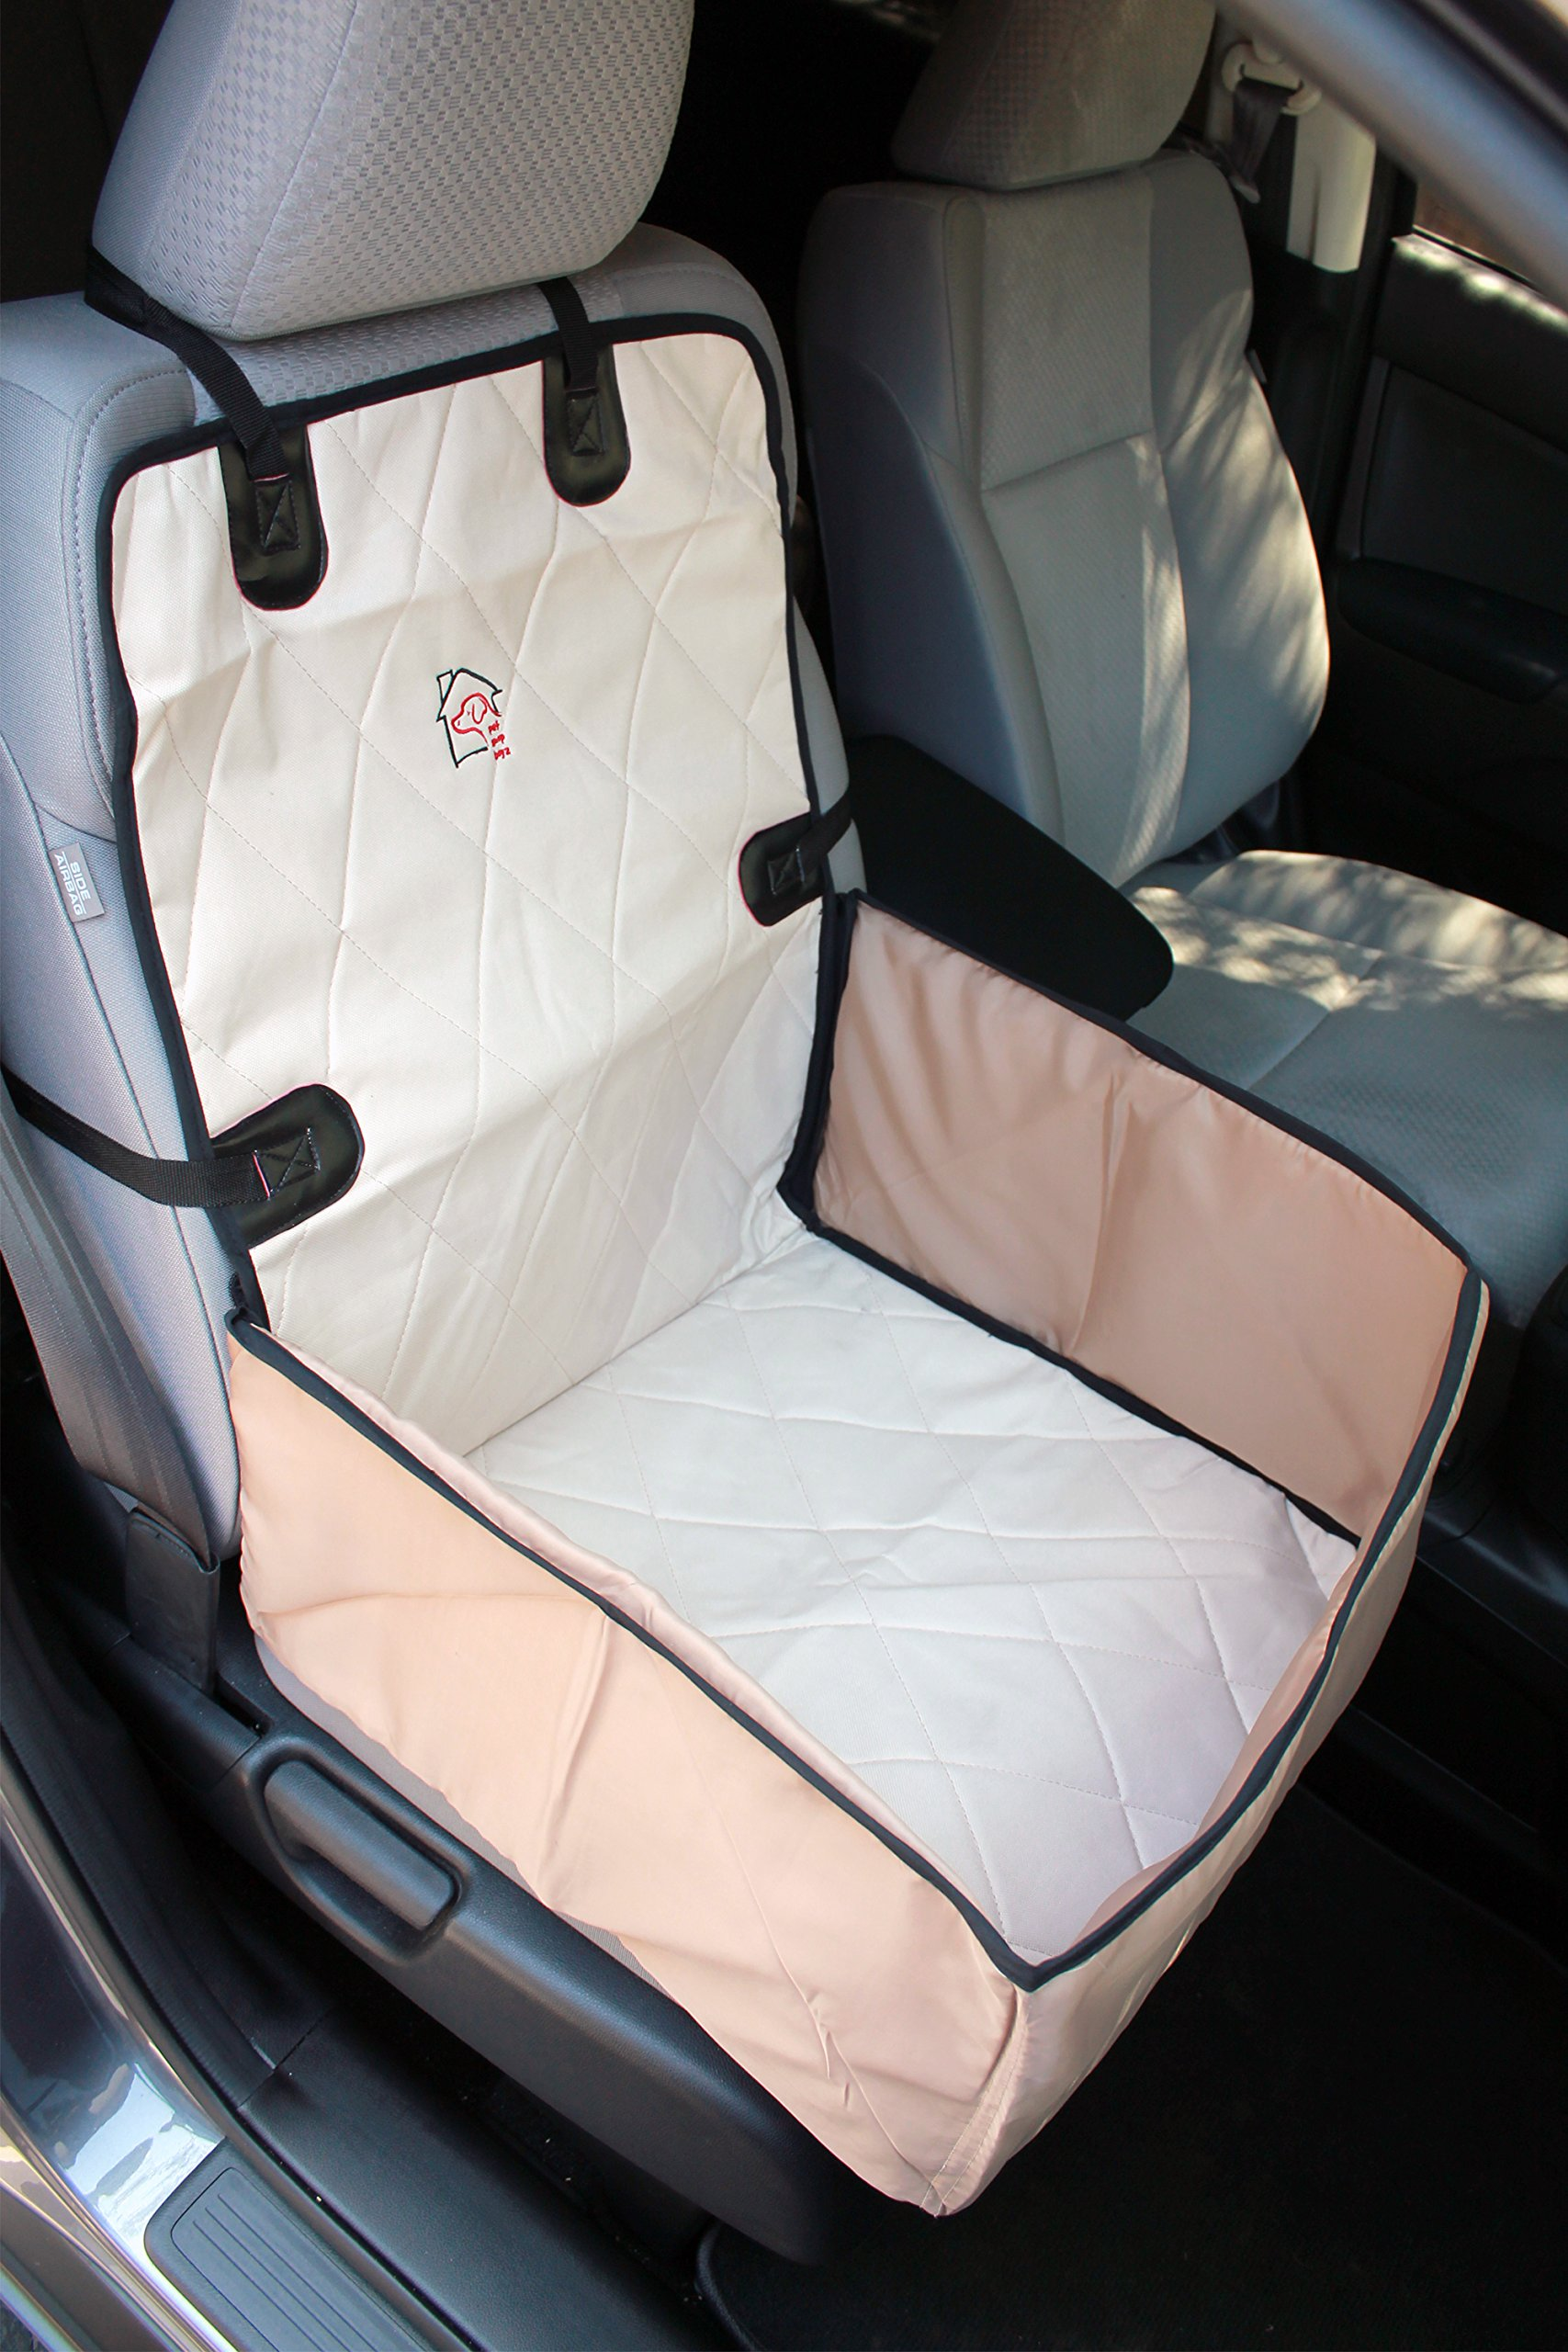 Front Car Seat Cover for Pets Waterproof, Bucket 2 in 1, Side Flaps, Quilted, Machine Washable for Cars, Trucks, SUV's & Vehicles Pets by Pet Shop Boyz (Beige)